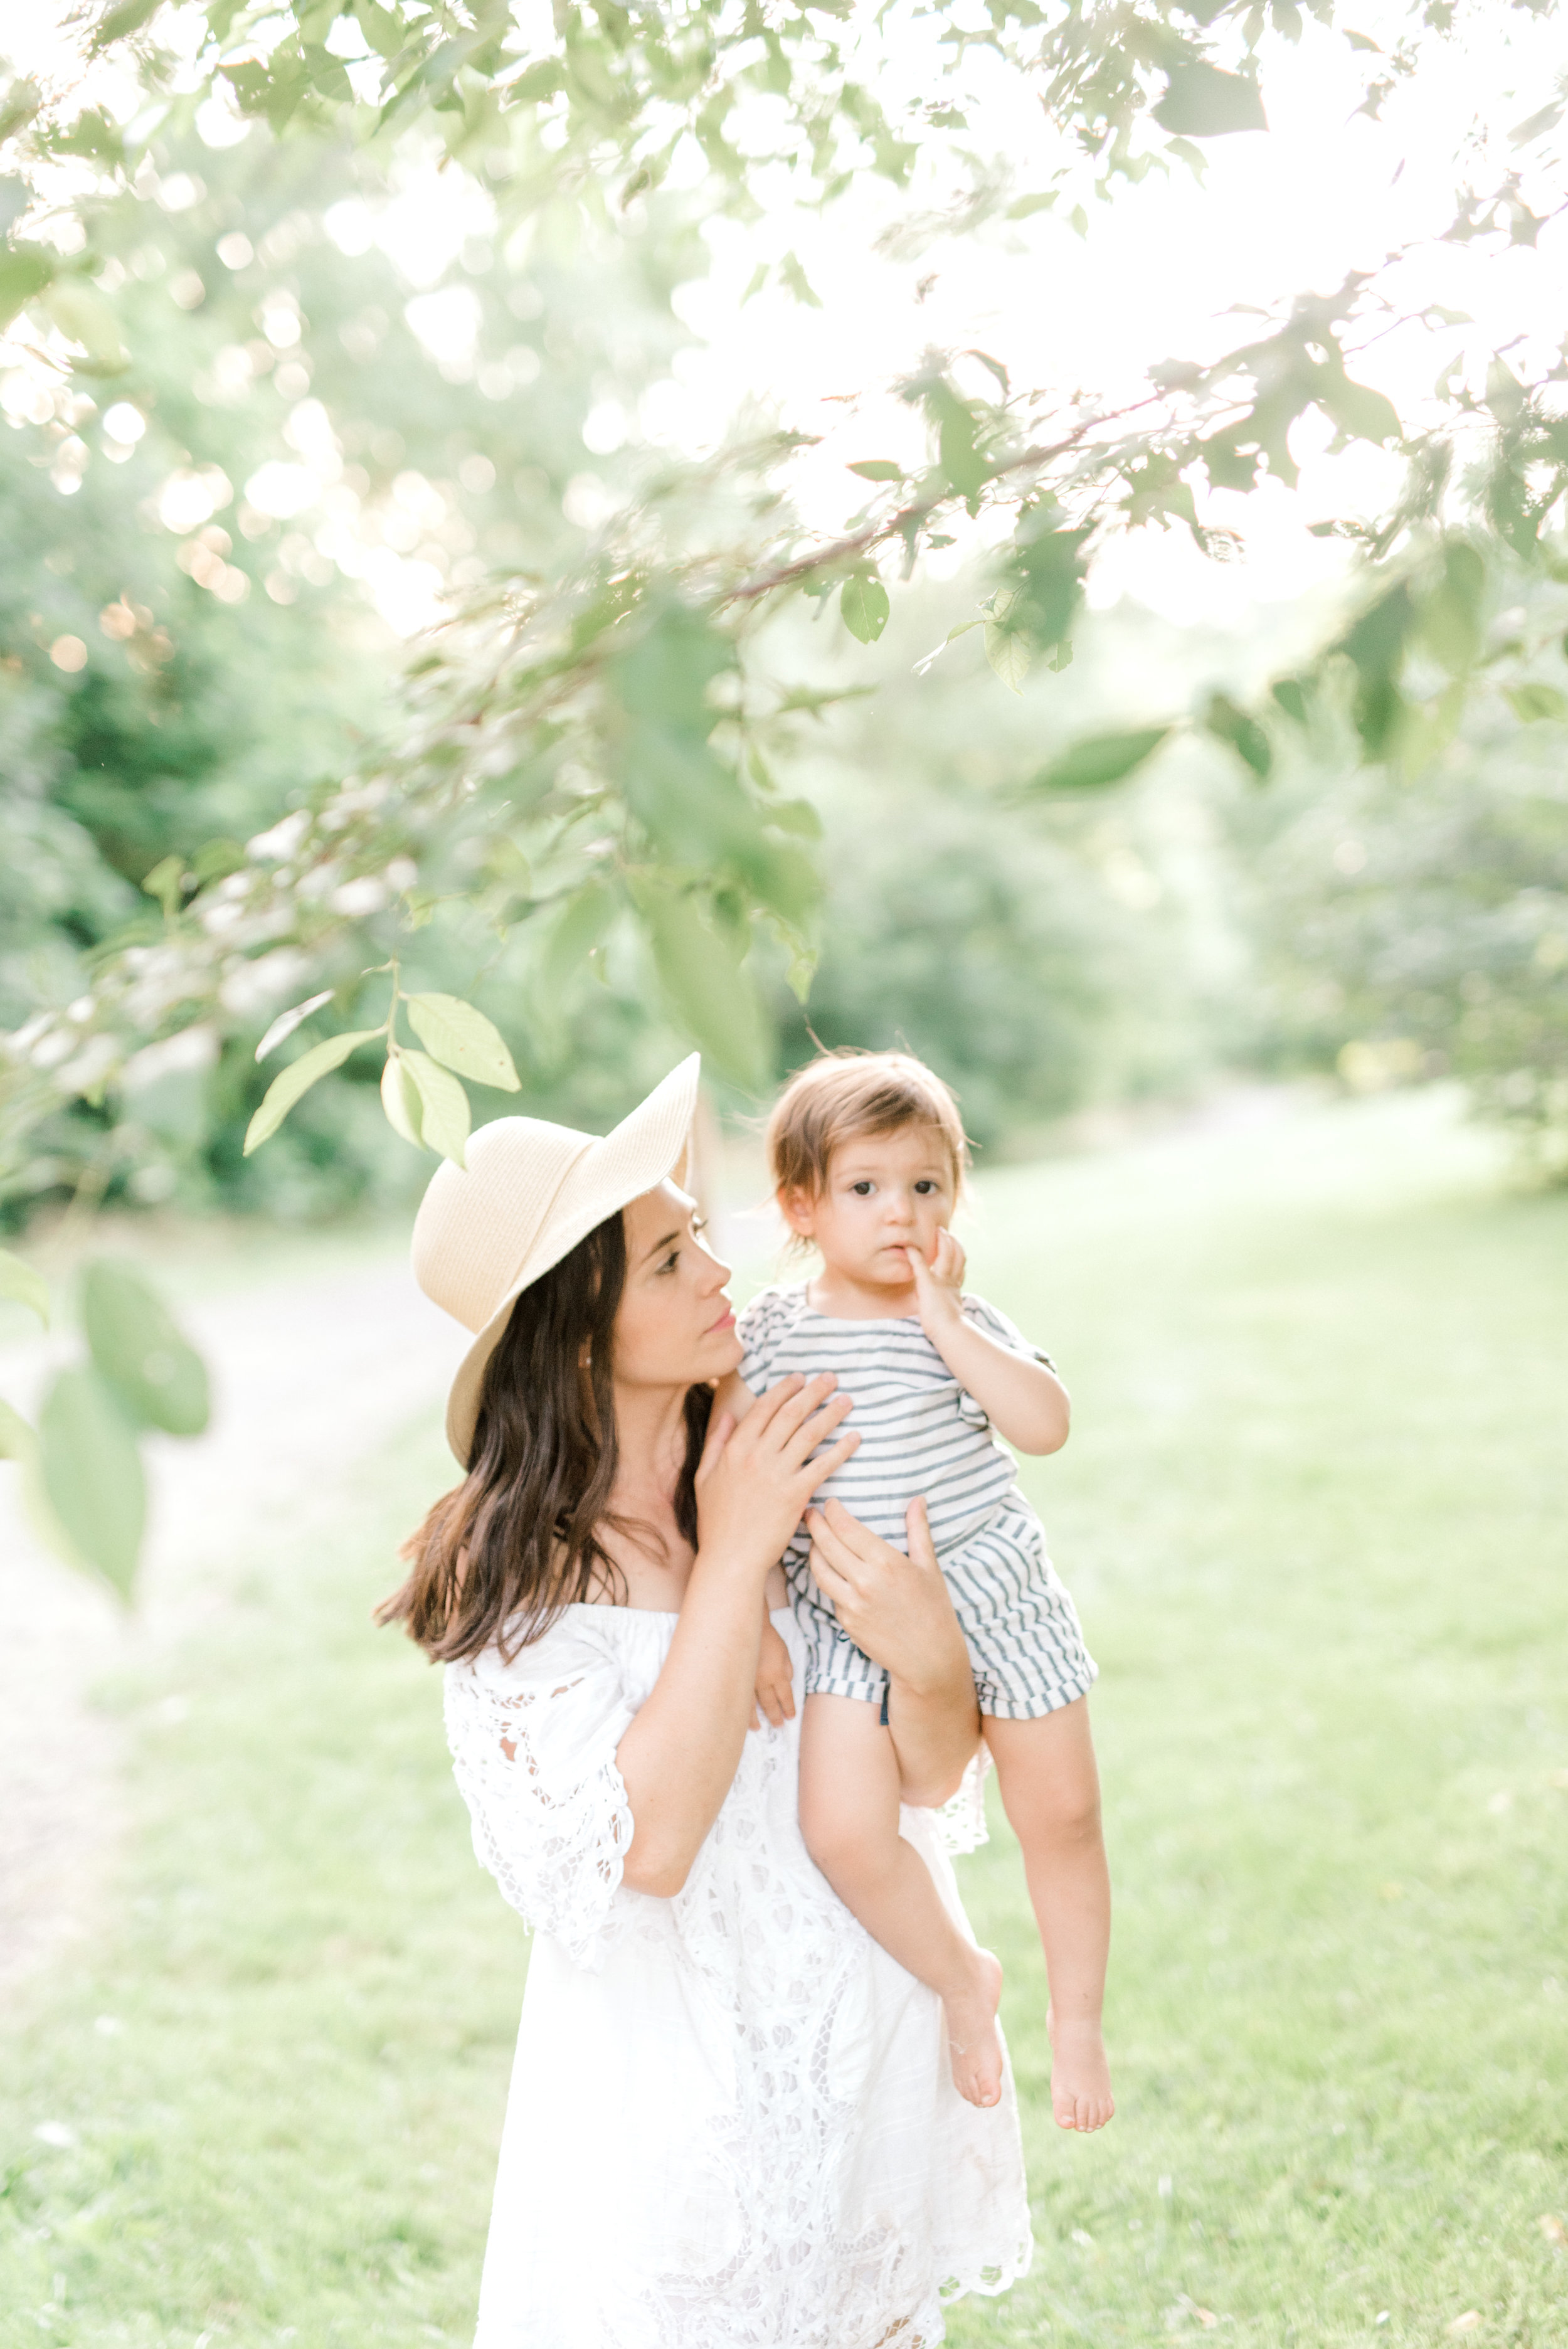 Adorable family photography session with modern rustic vibes in Newtown Square, Pennsylvania